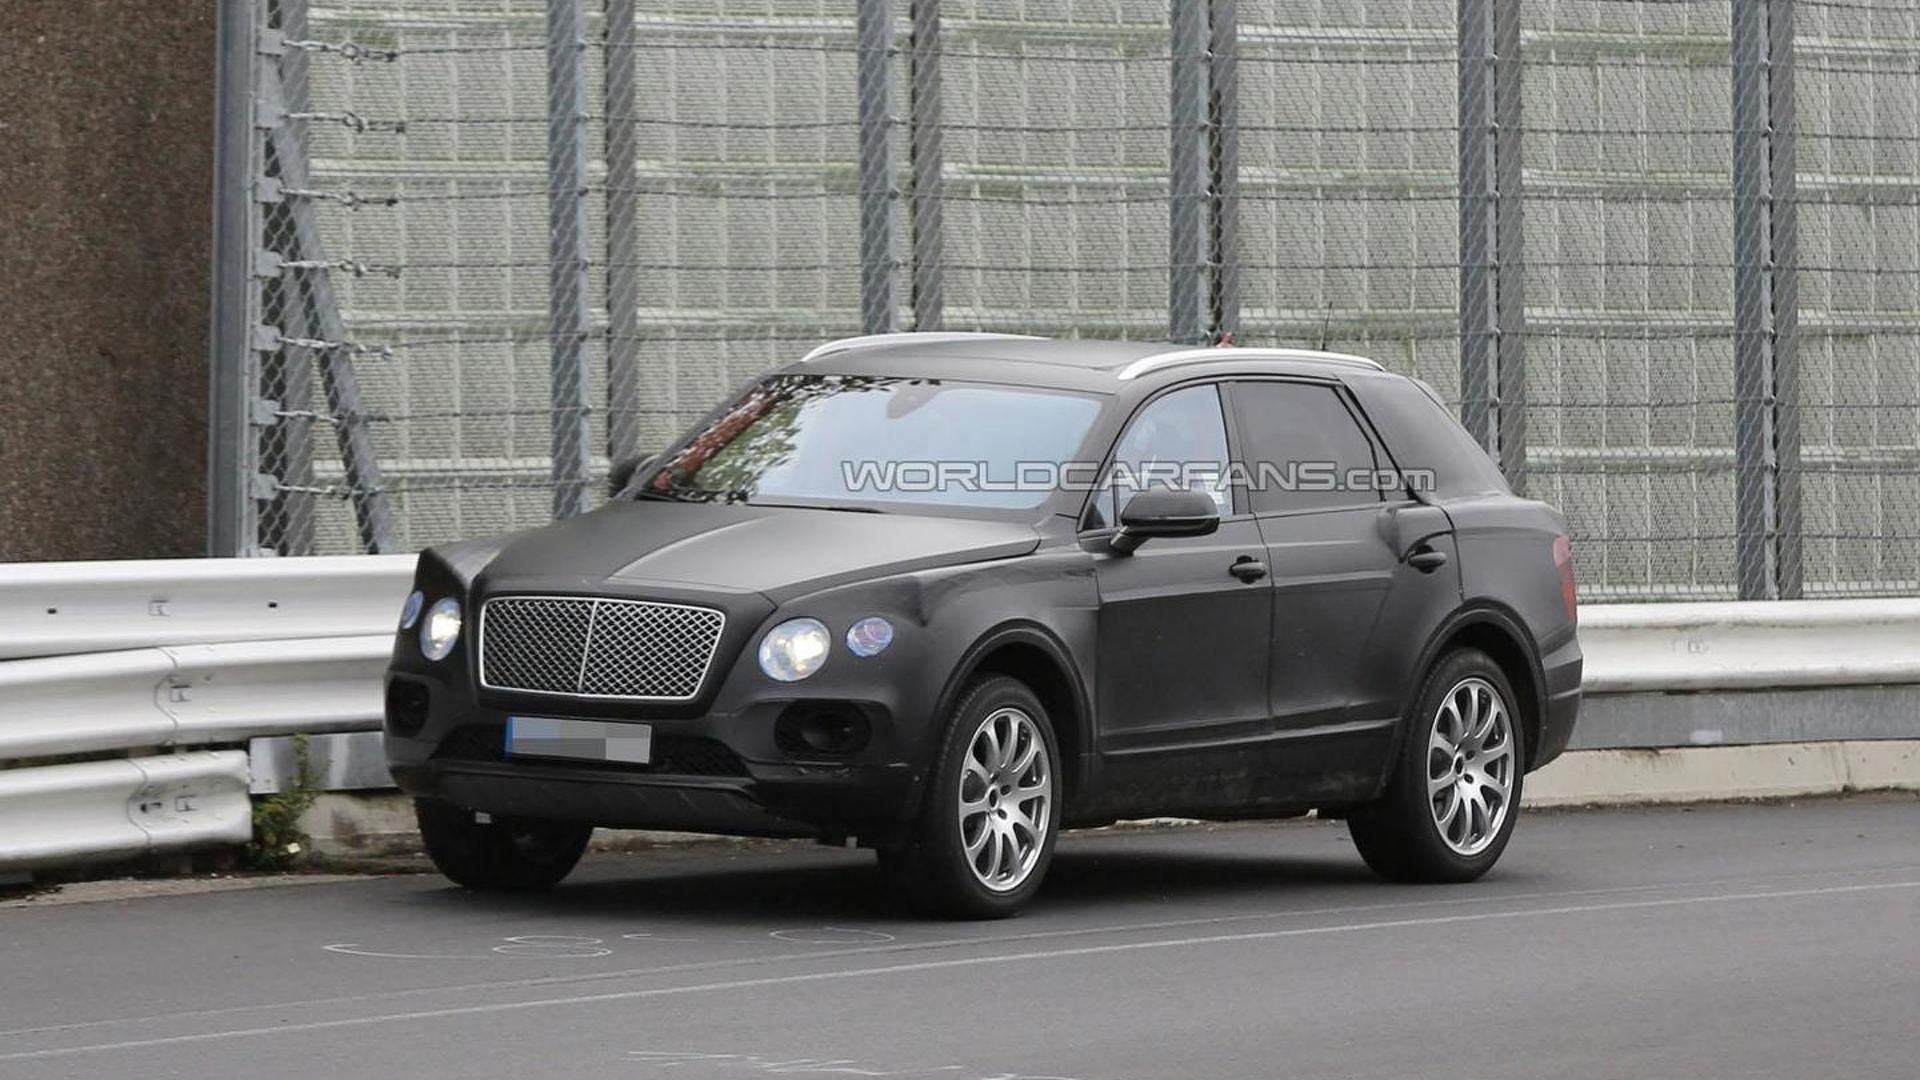 Bentley could launch a smaller SUV in the years to come